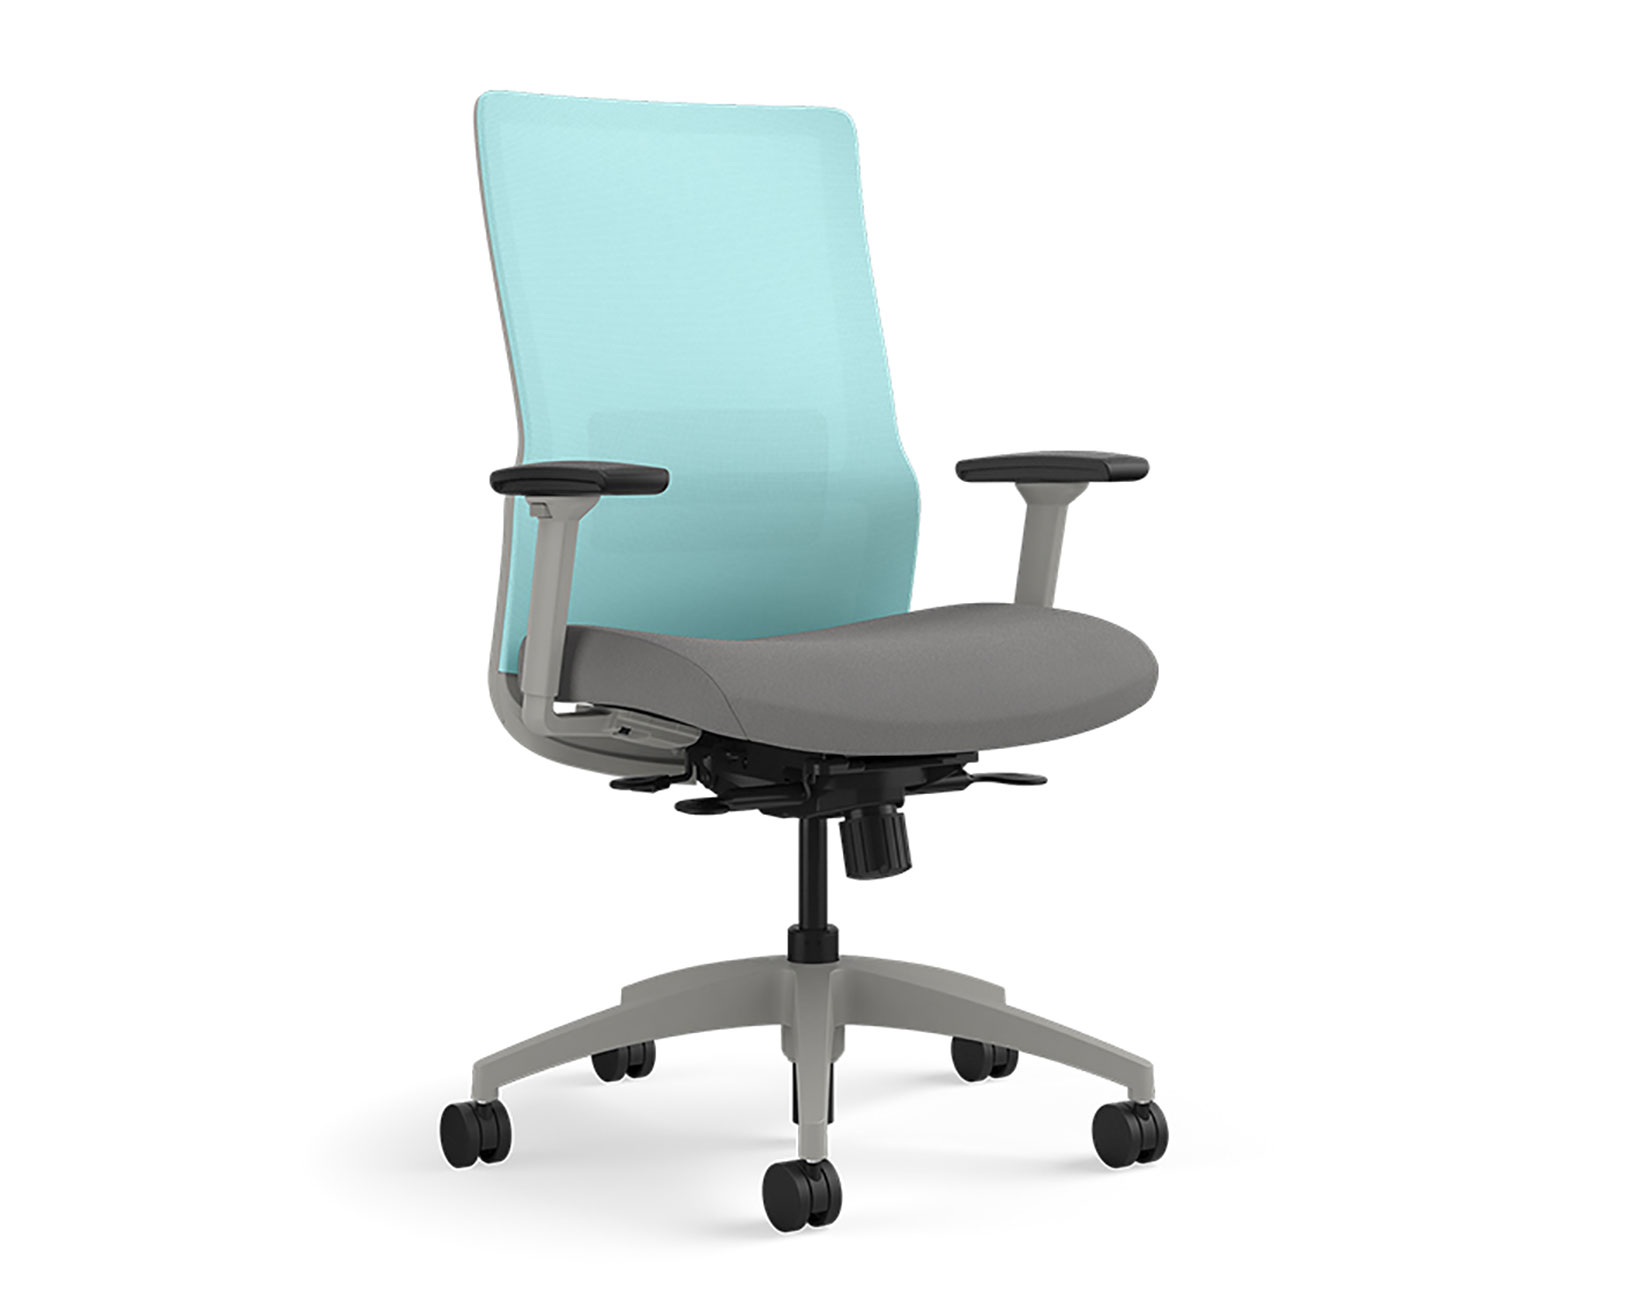 office customer chairs 3 in 1 beach chair sitonit novo task furniture ethosource